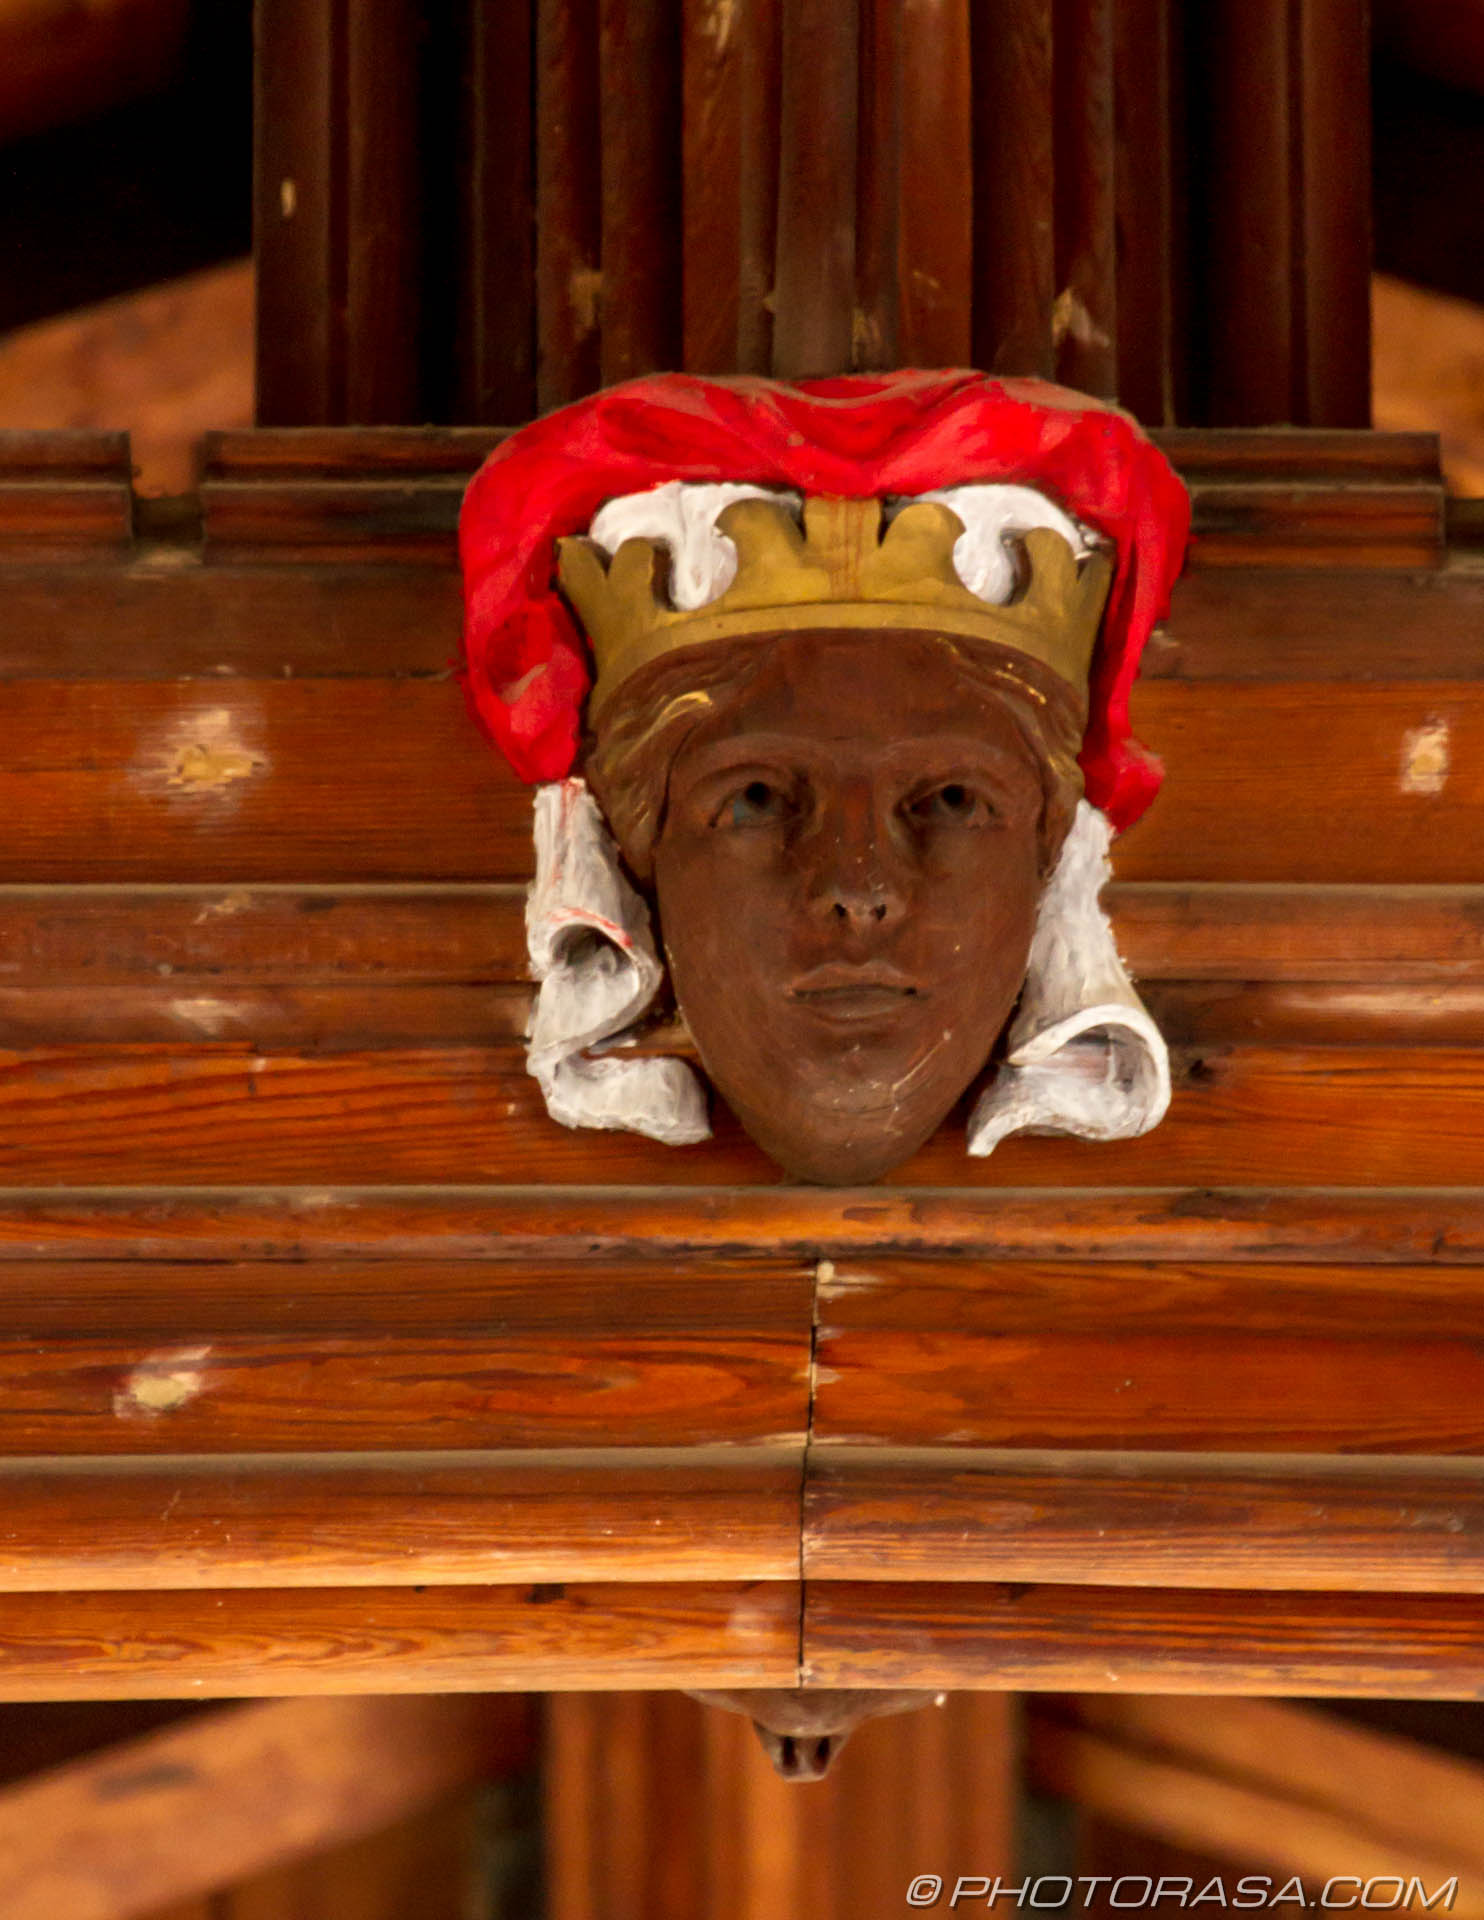 http://photorasa.com/st-dunstans-church-cranbrook/victorian-roof-carving-of-queen-victorias-head/